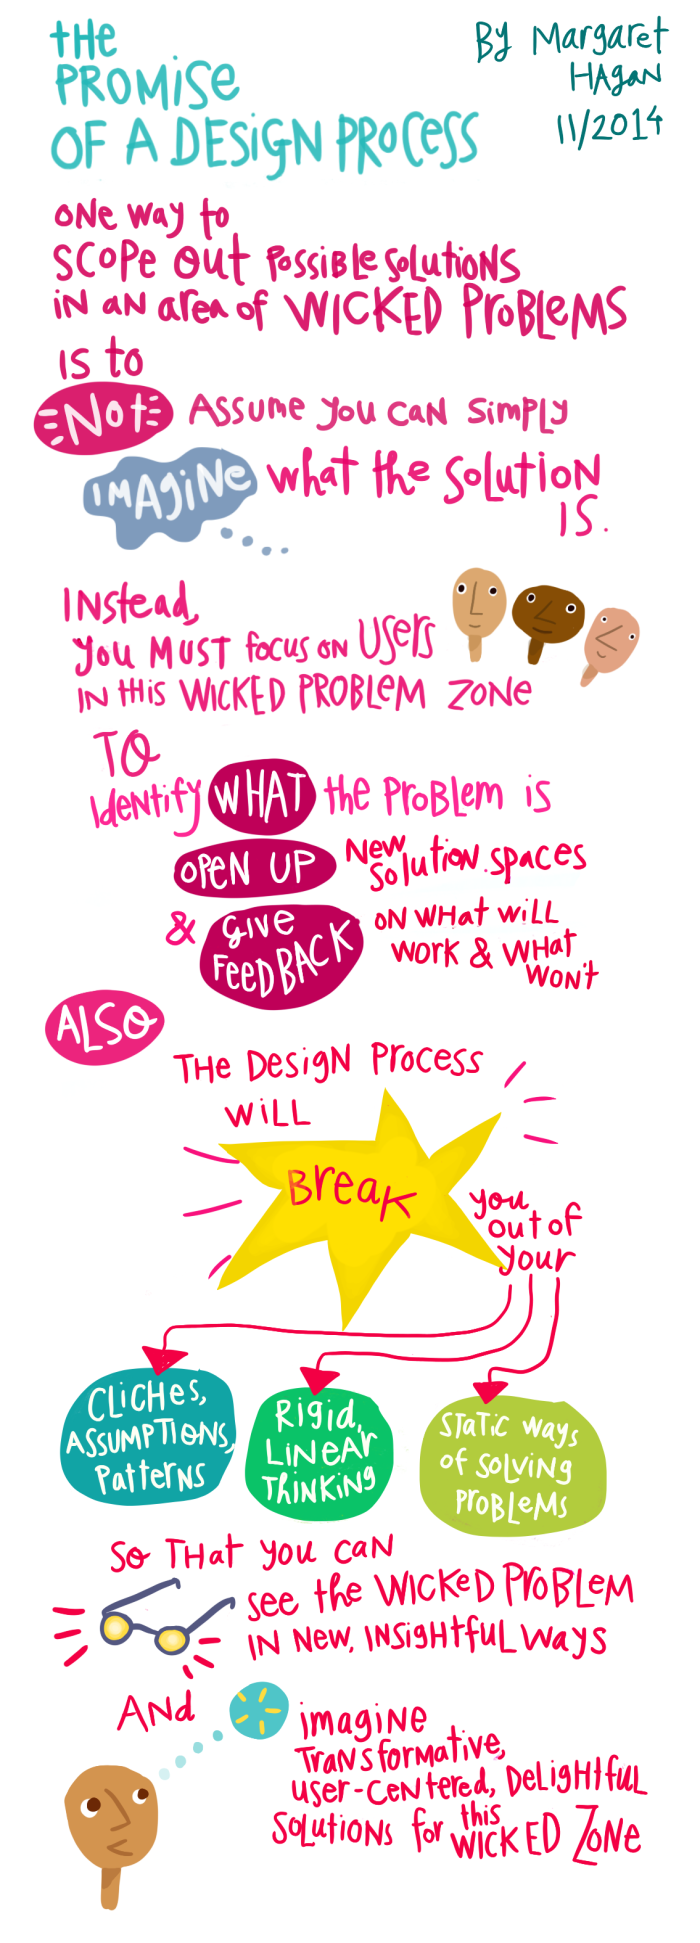 The Promise of a Design Process - by Margaret Hagan - design thinking